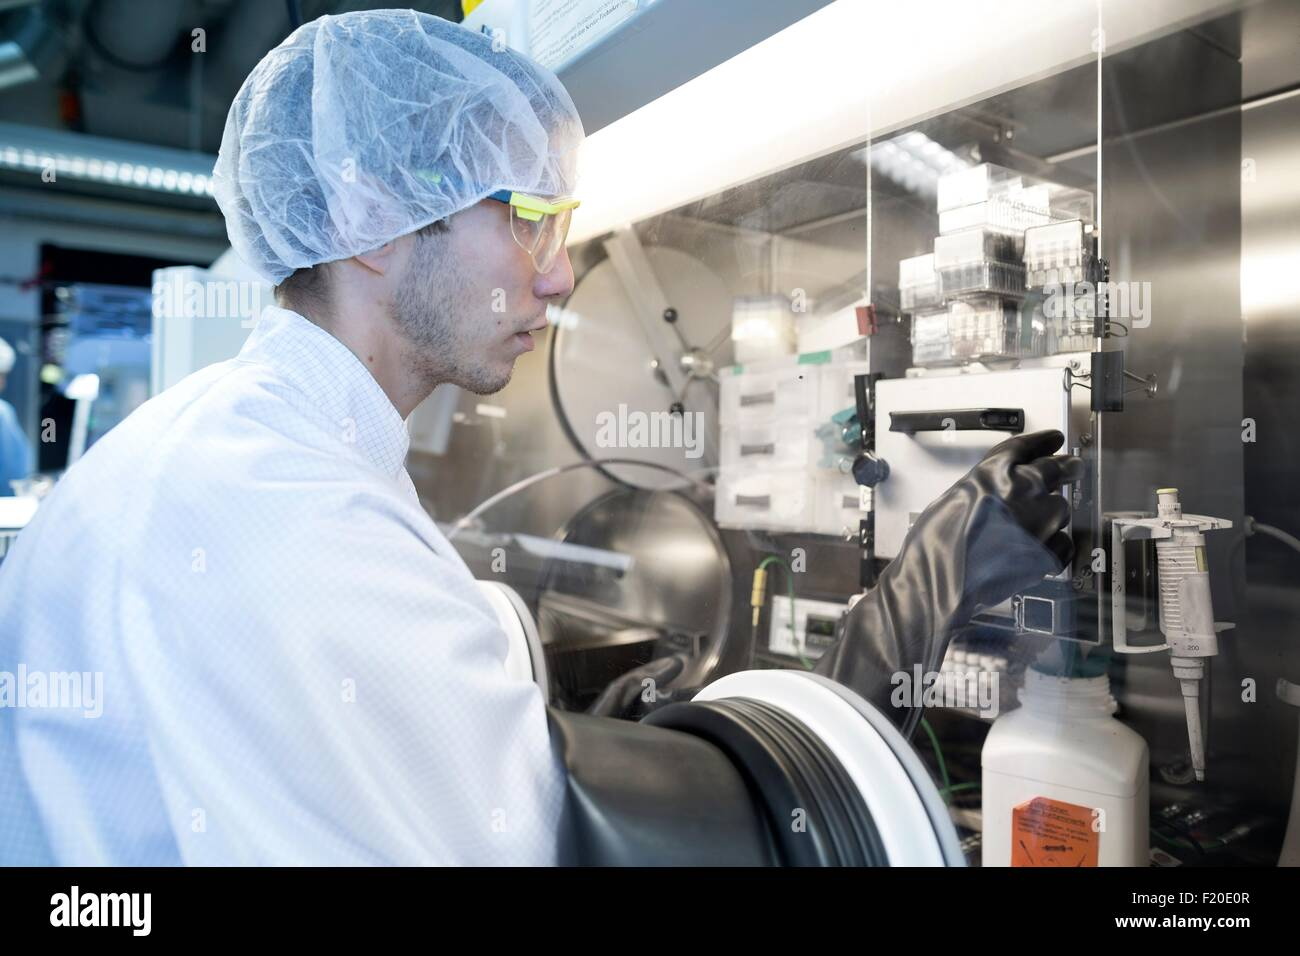 Male scientist adjusting switch in fume hood in lab cleanroom - Stock Image